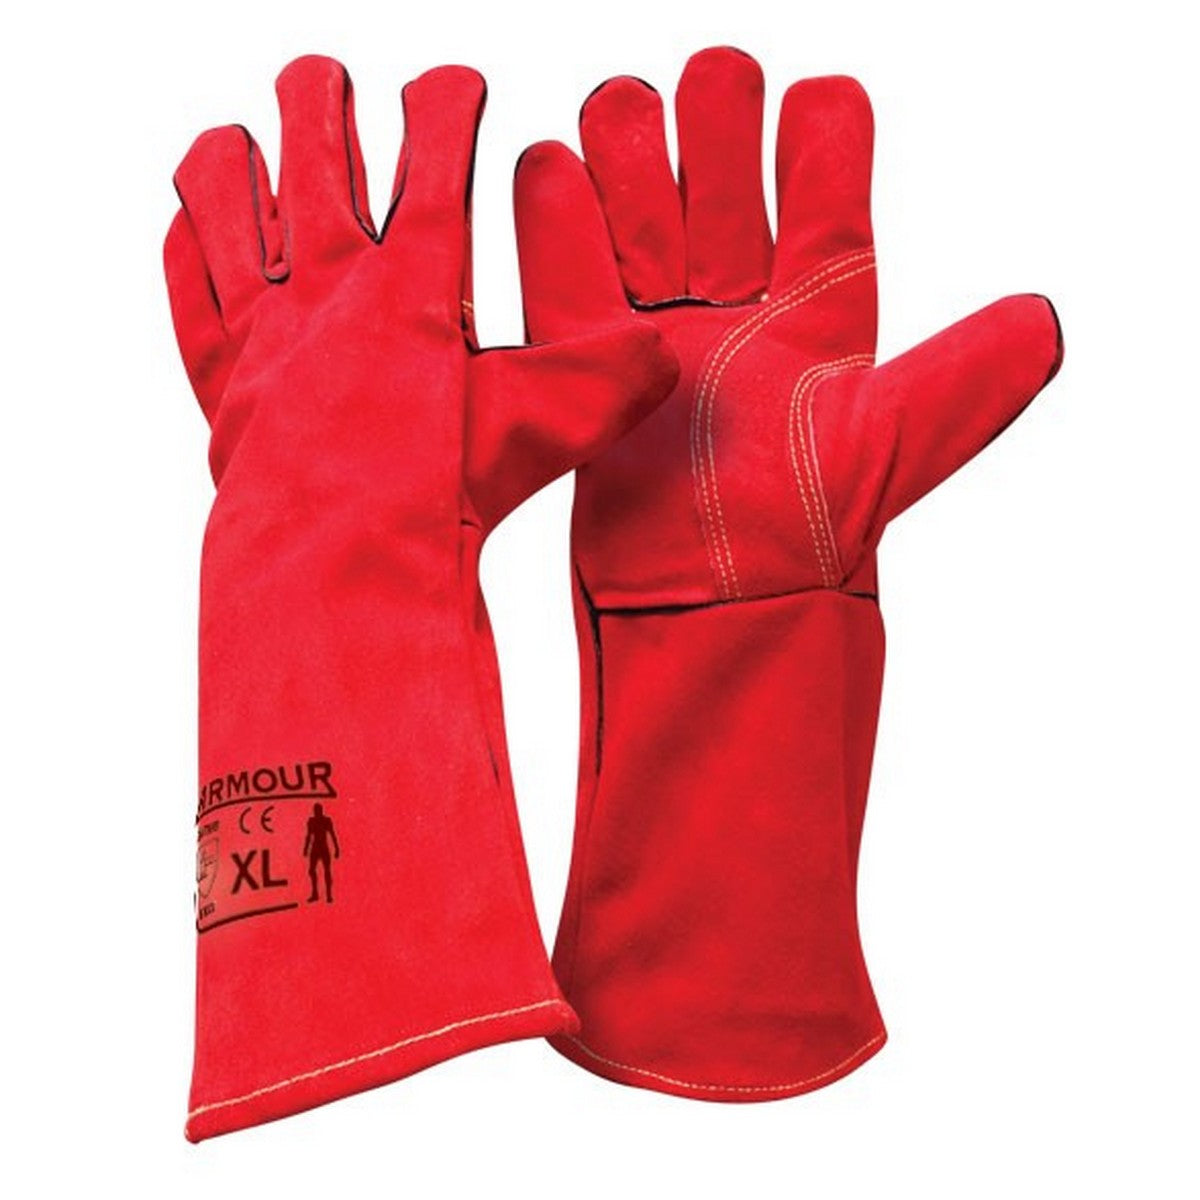 Image of Armour Red Welding Gauntlet Glove - 40cm